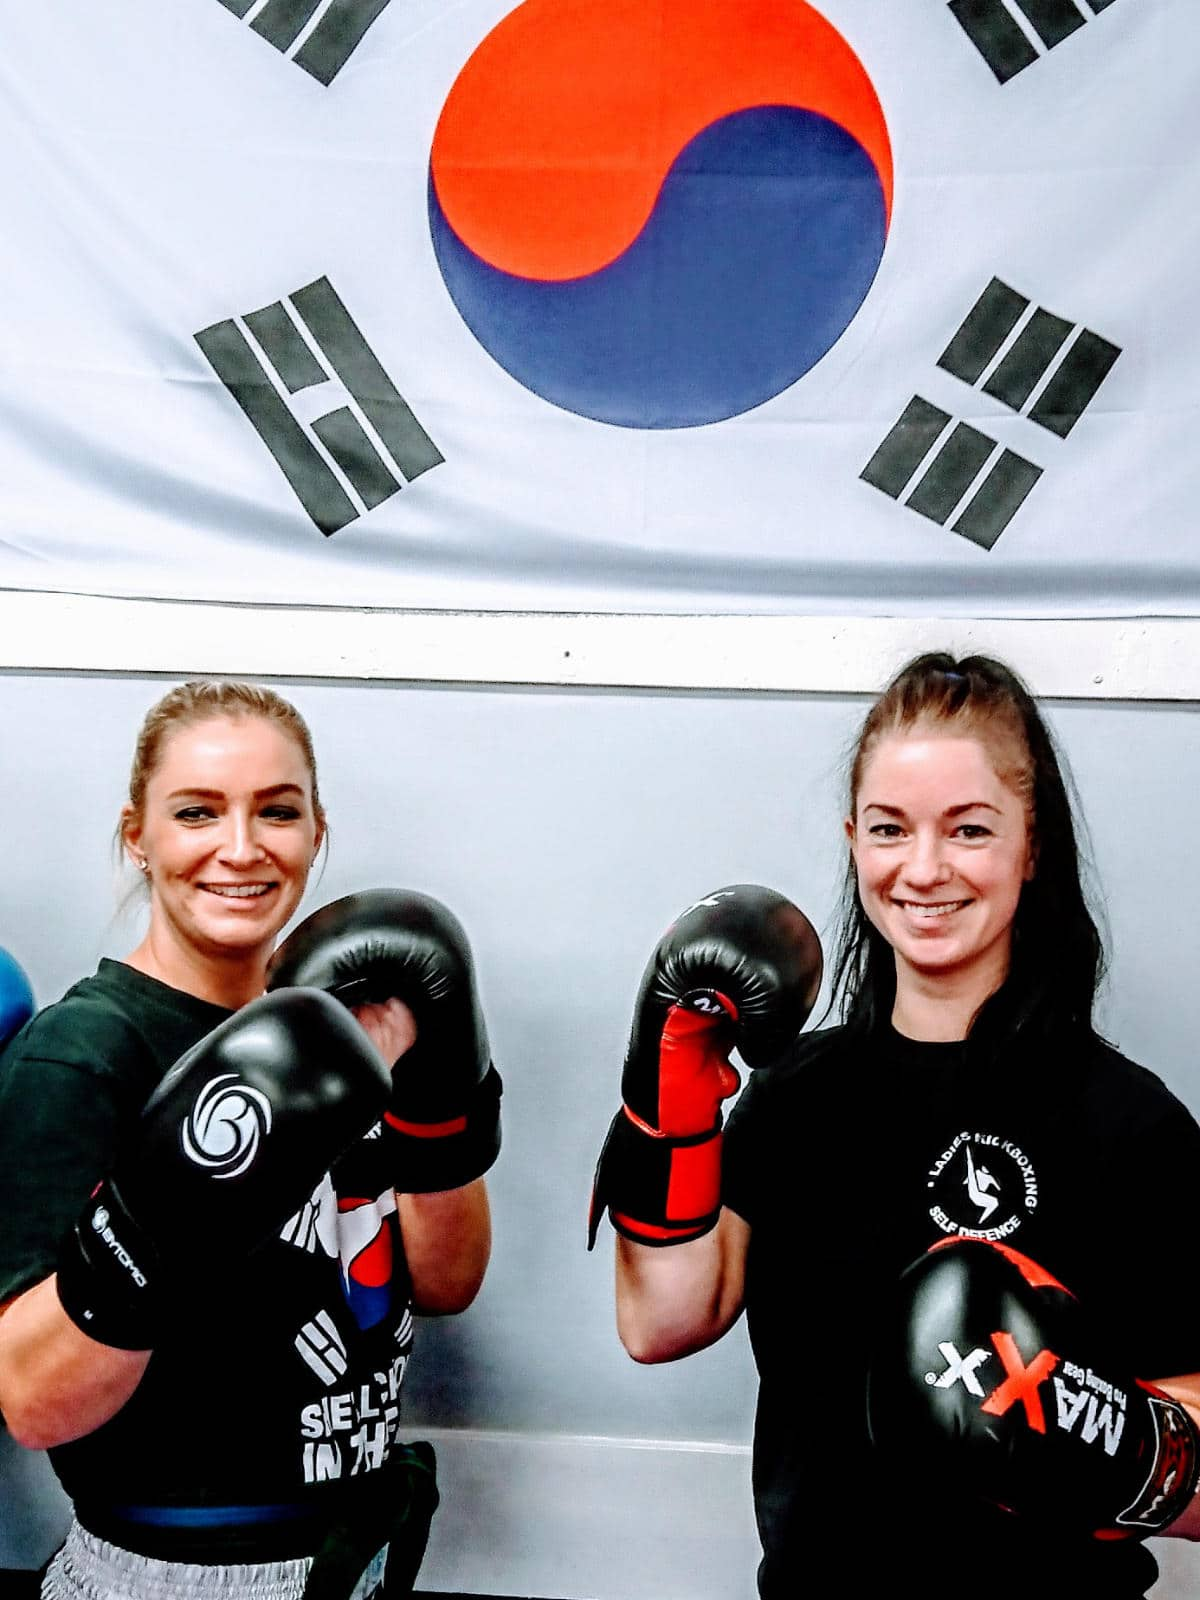 Two female kickboxing students posing wearing boxing gloves